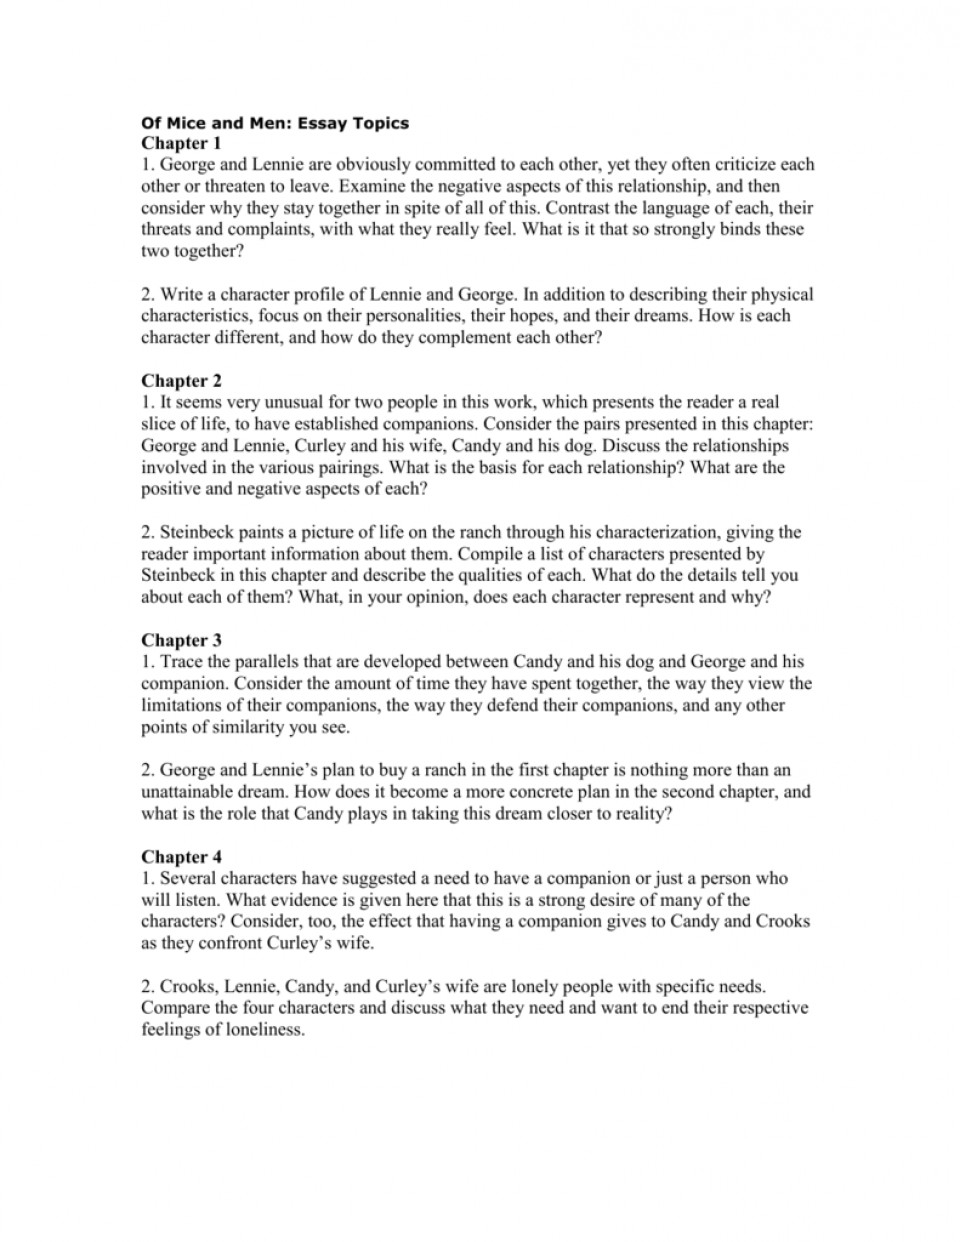 024 Profile Essay Topics Example 007667445 2 Outstanding Personal Good 960